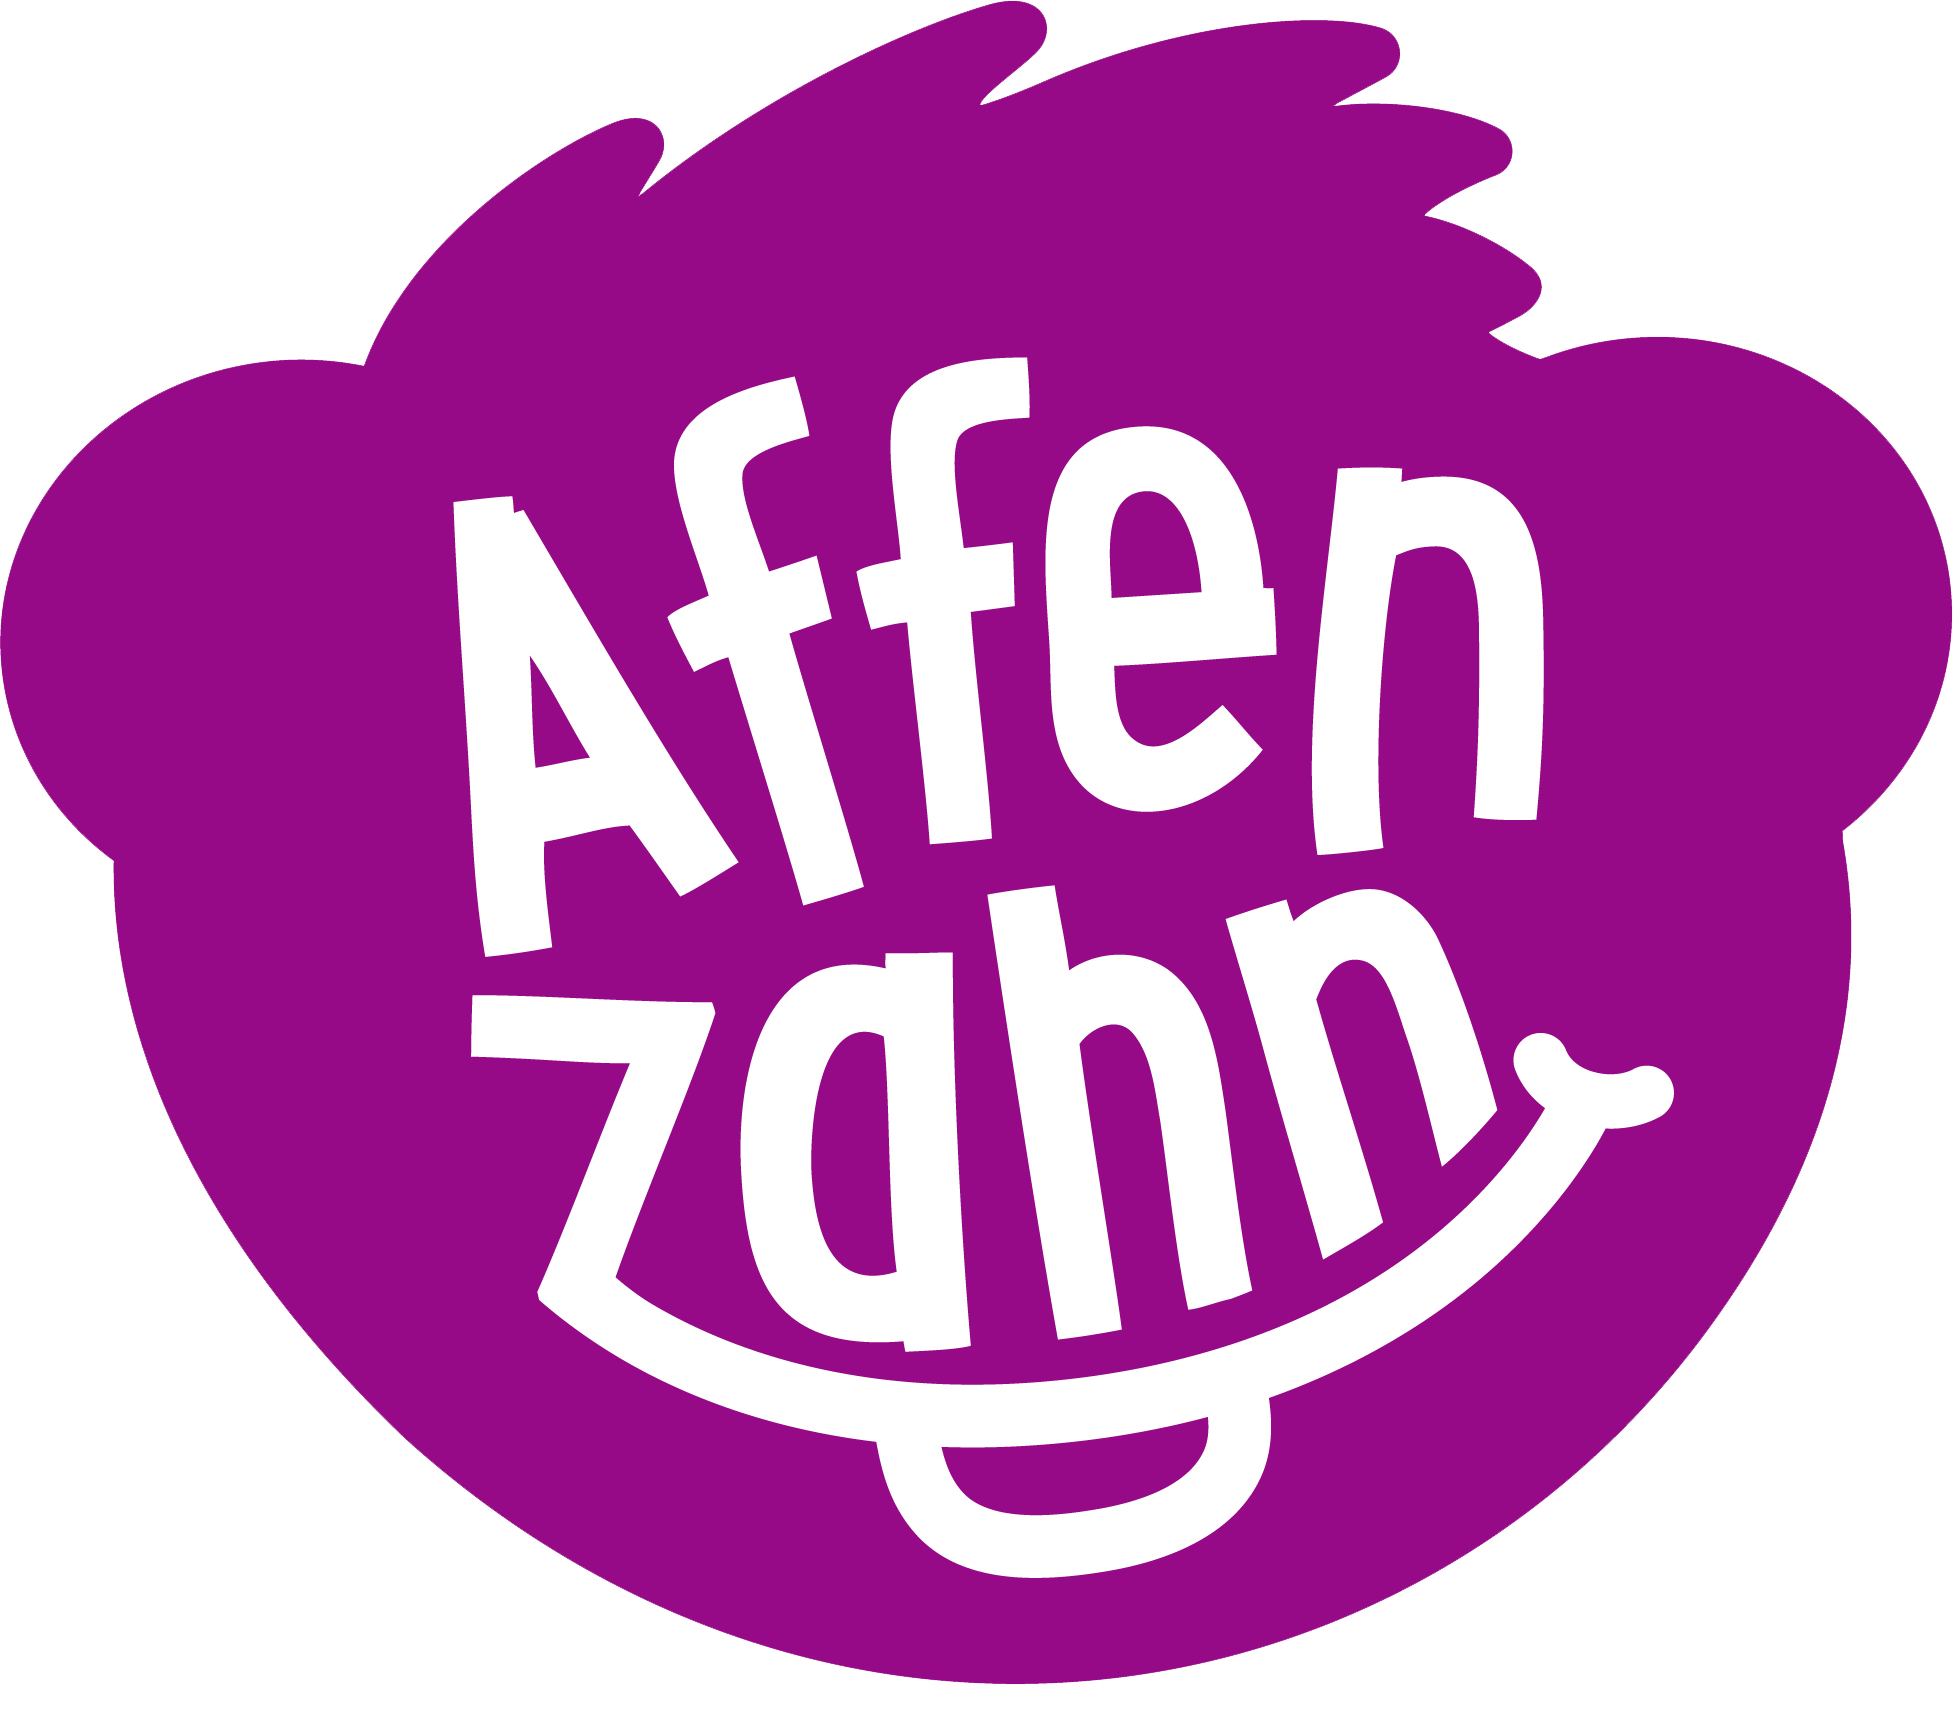 Affenzahn